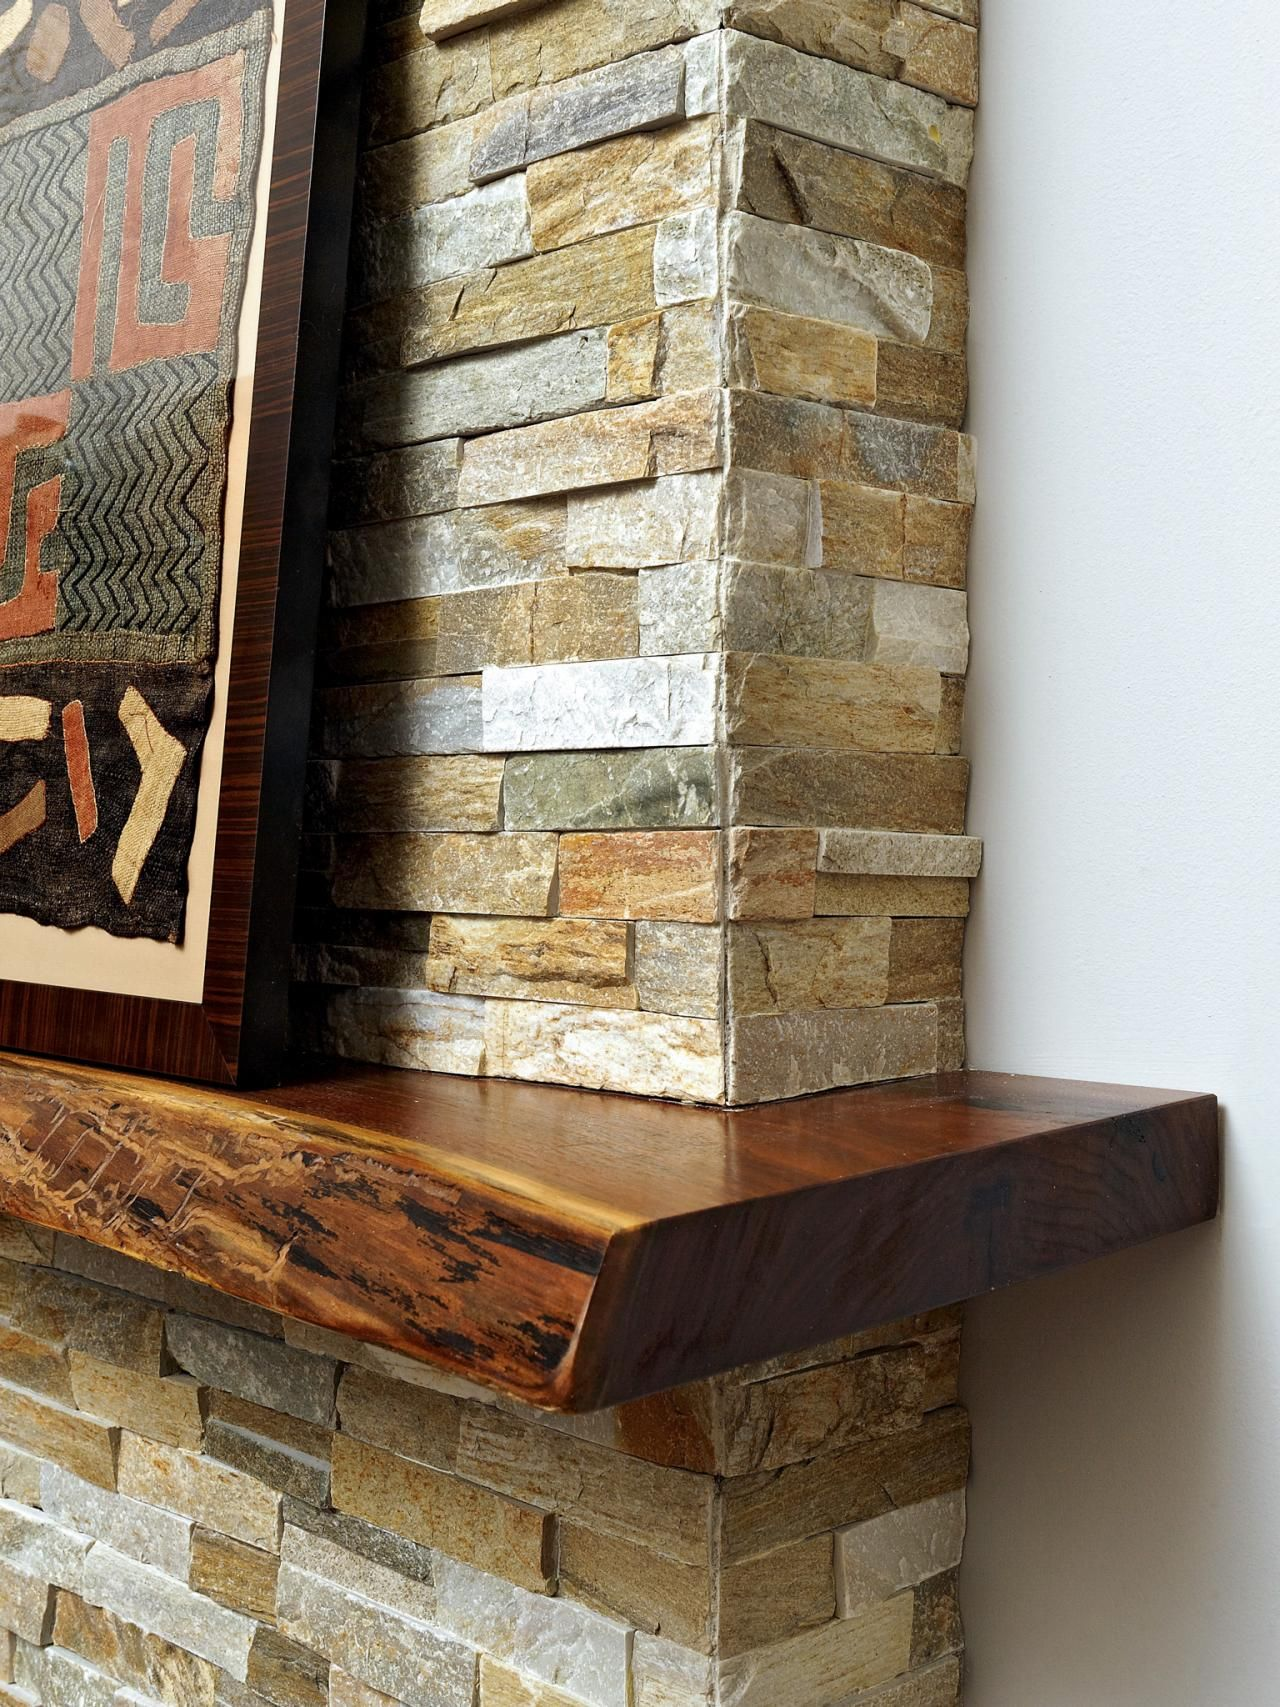 A live edge kitchen island in this contemporary home was the inspiration for incorporating live stone fireplace